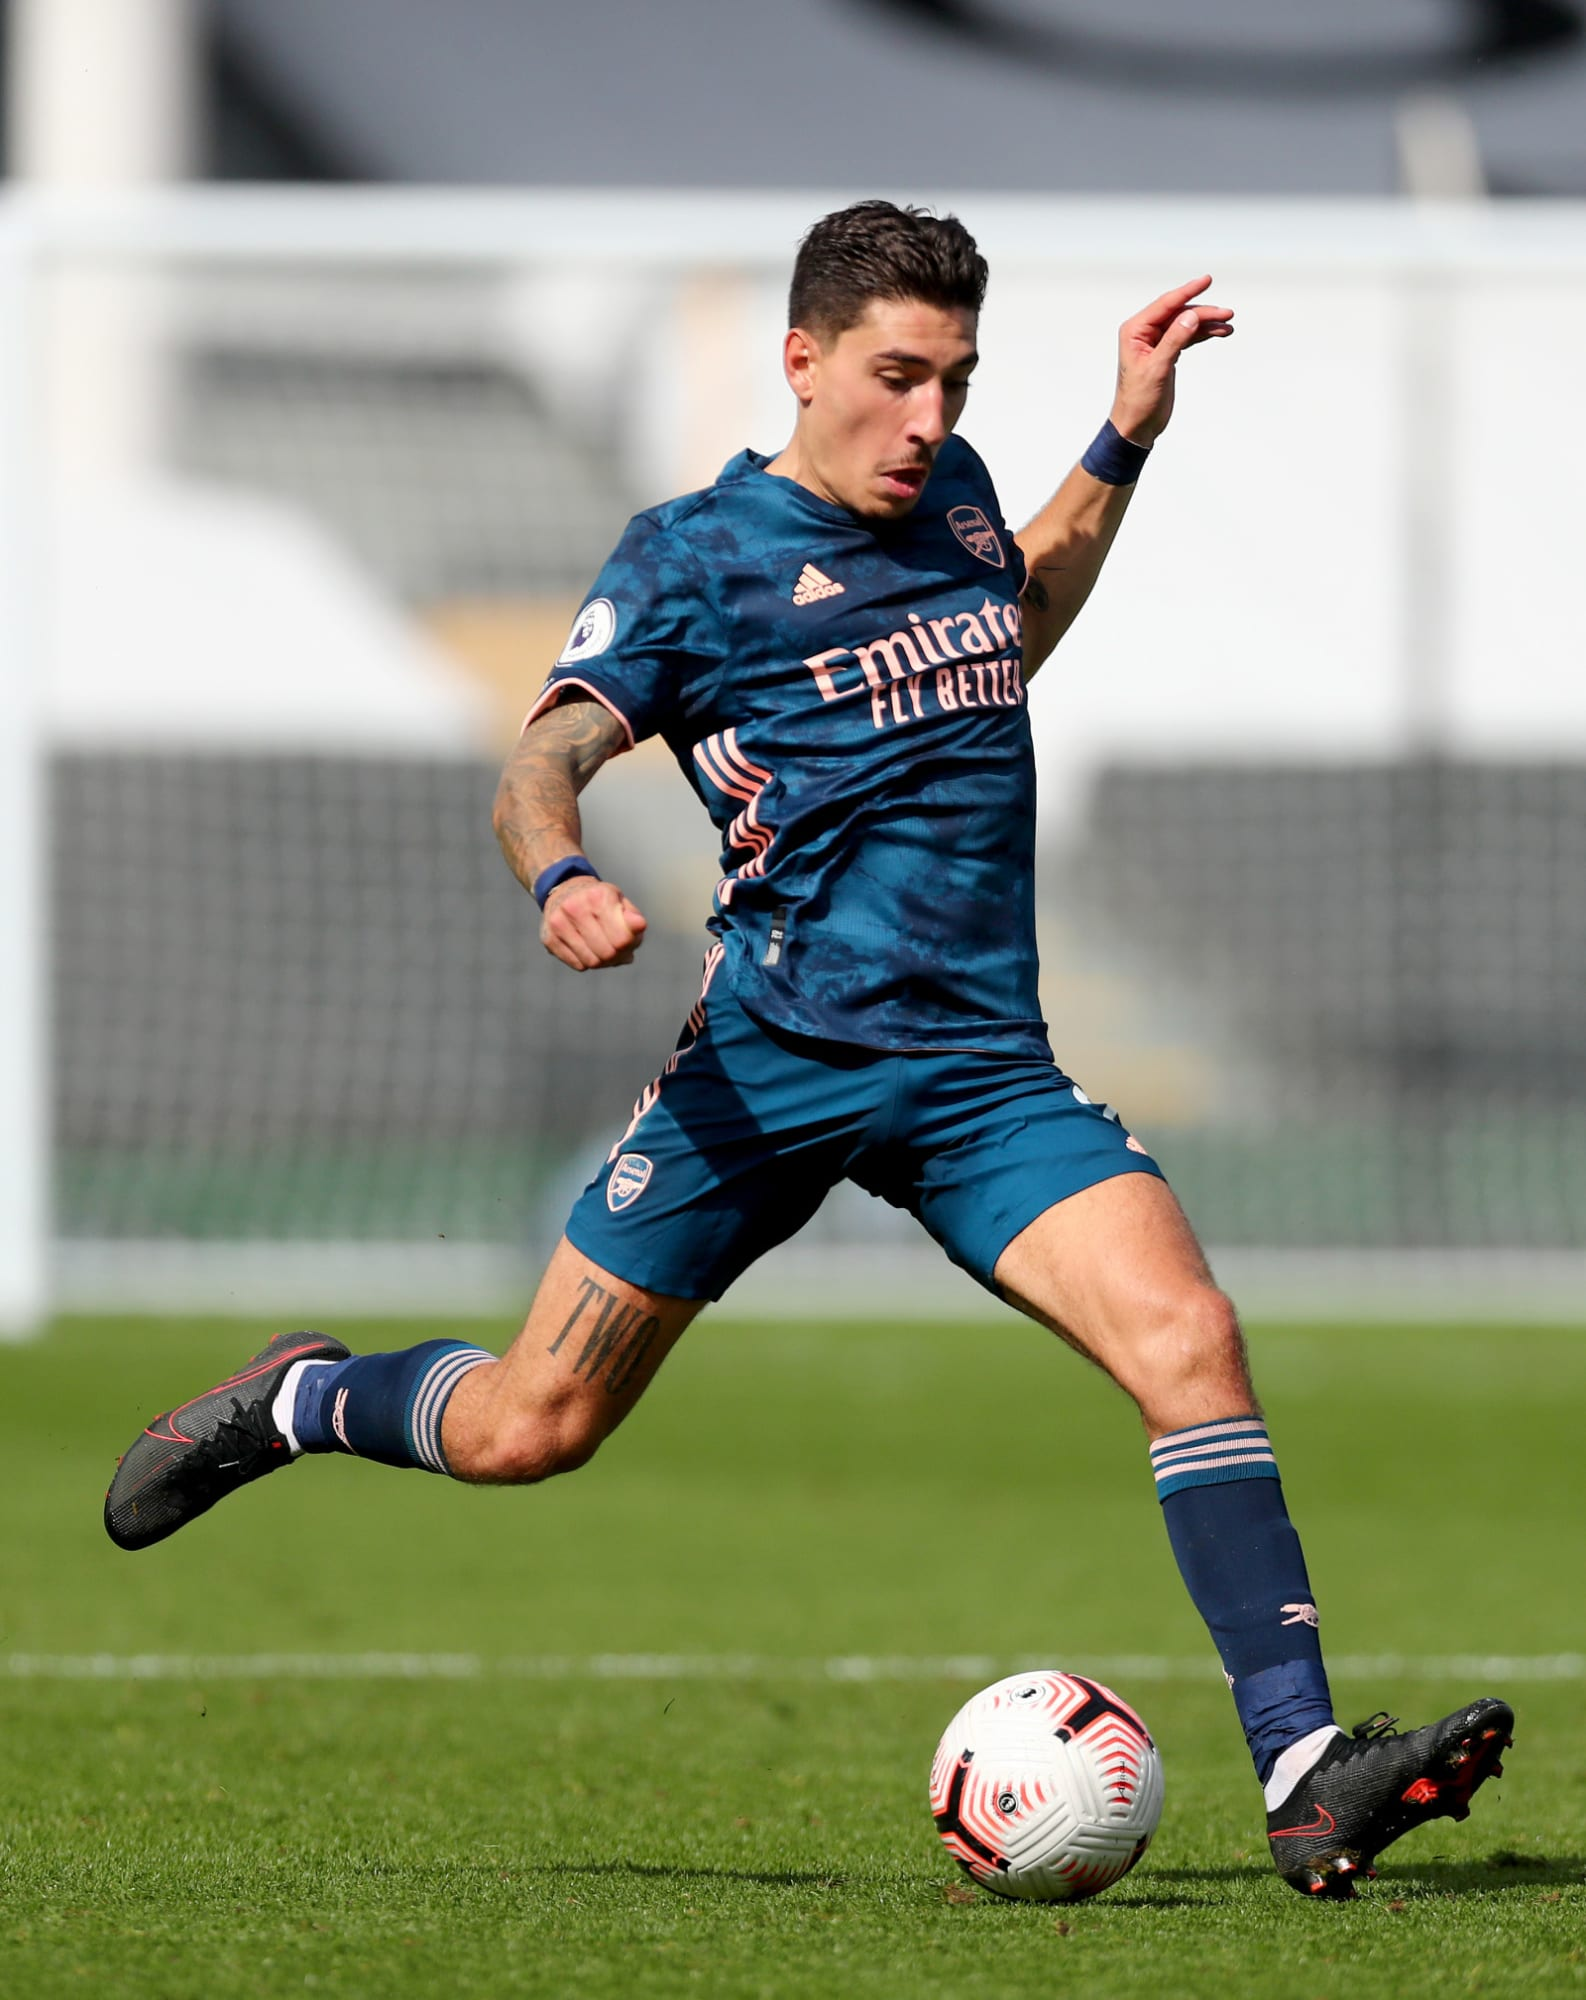 Barcelona shouldn't try to sign Hector Bellerin from Arsenal